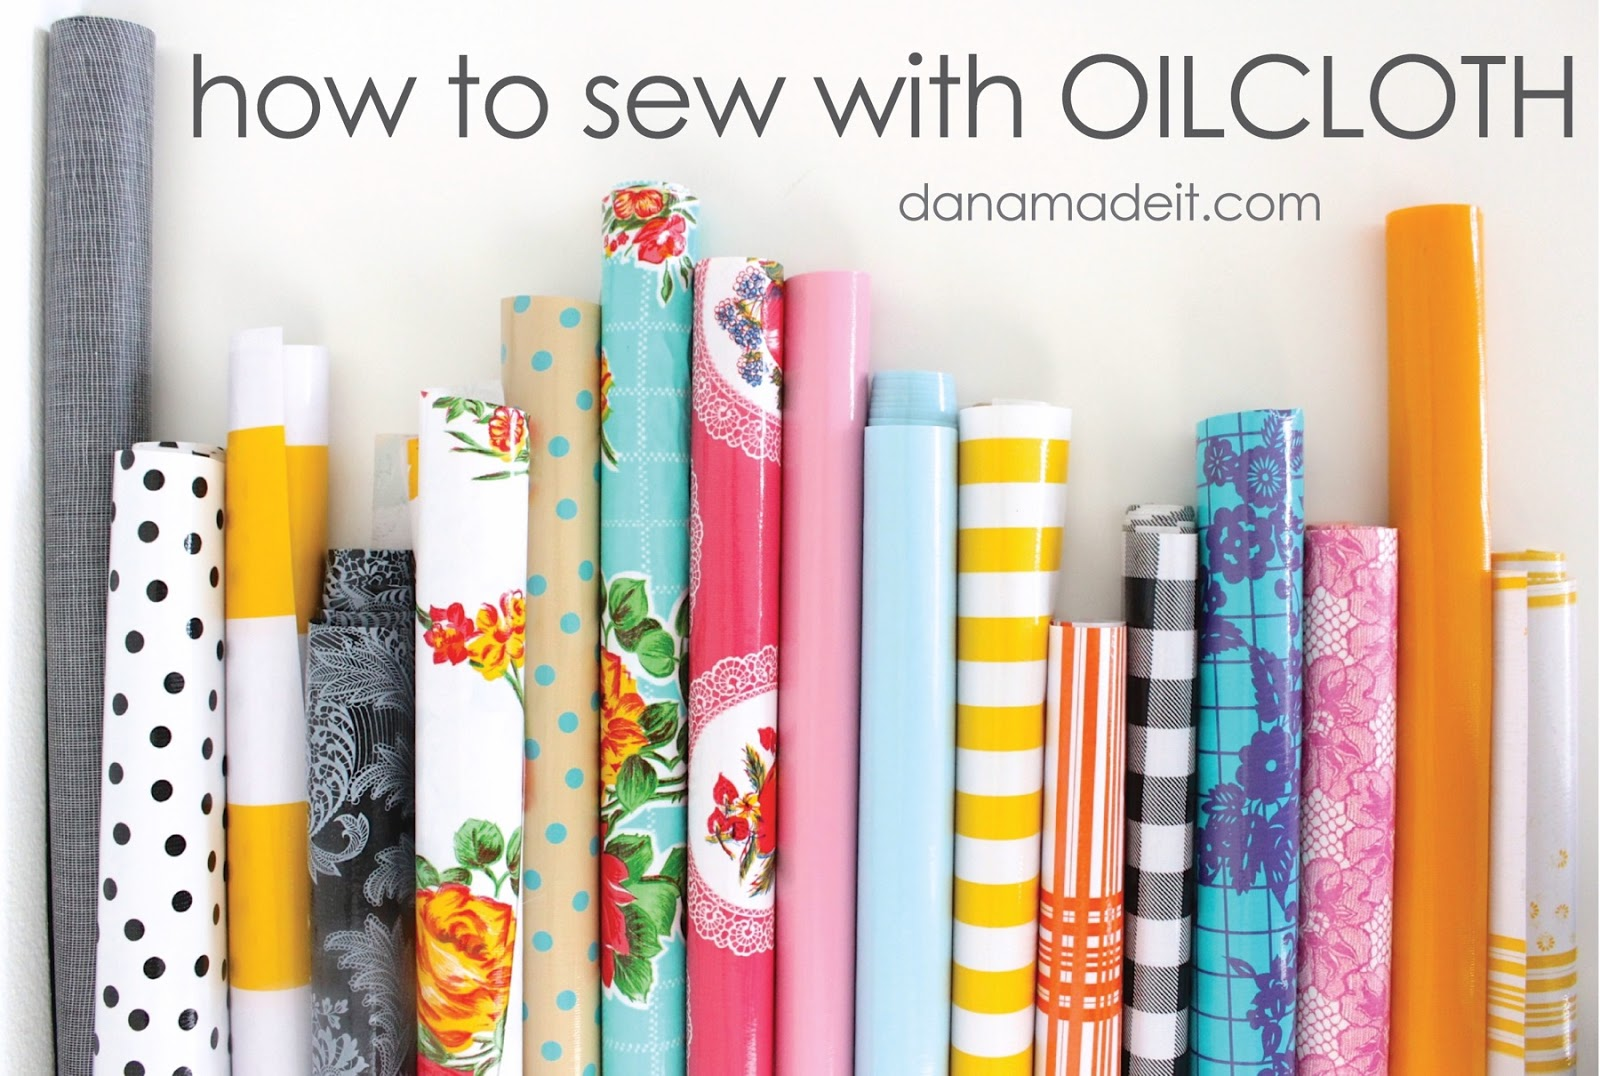 How to Sew Oilcloth